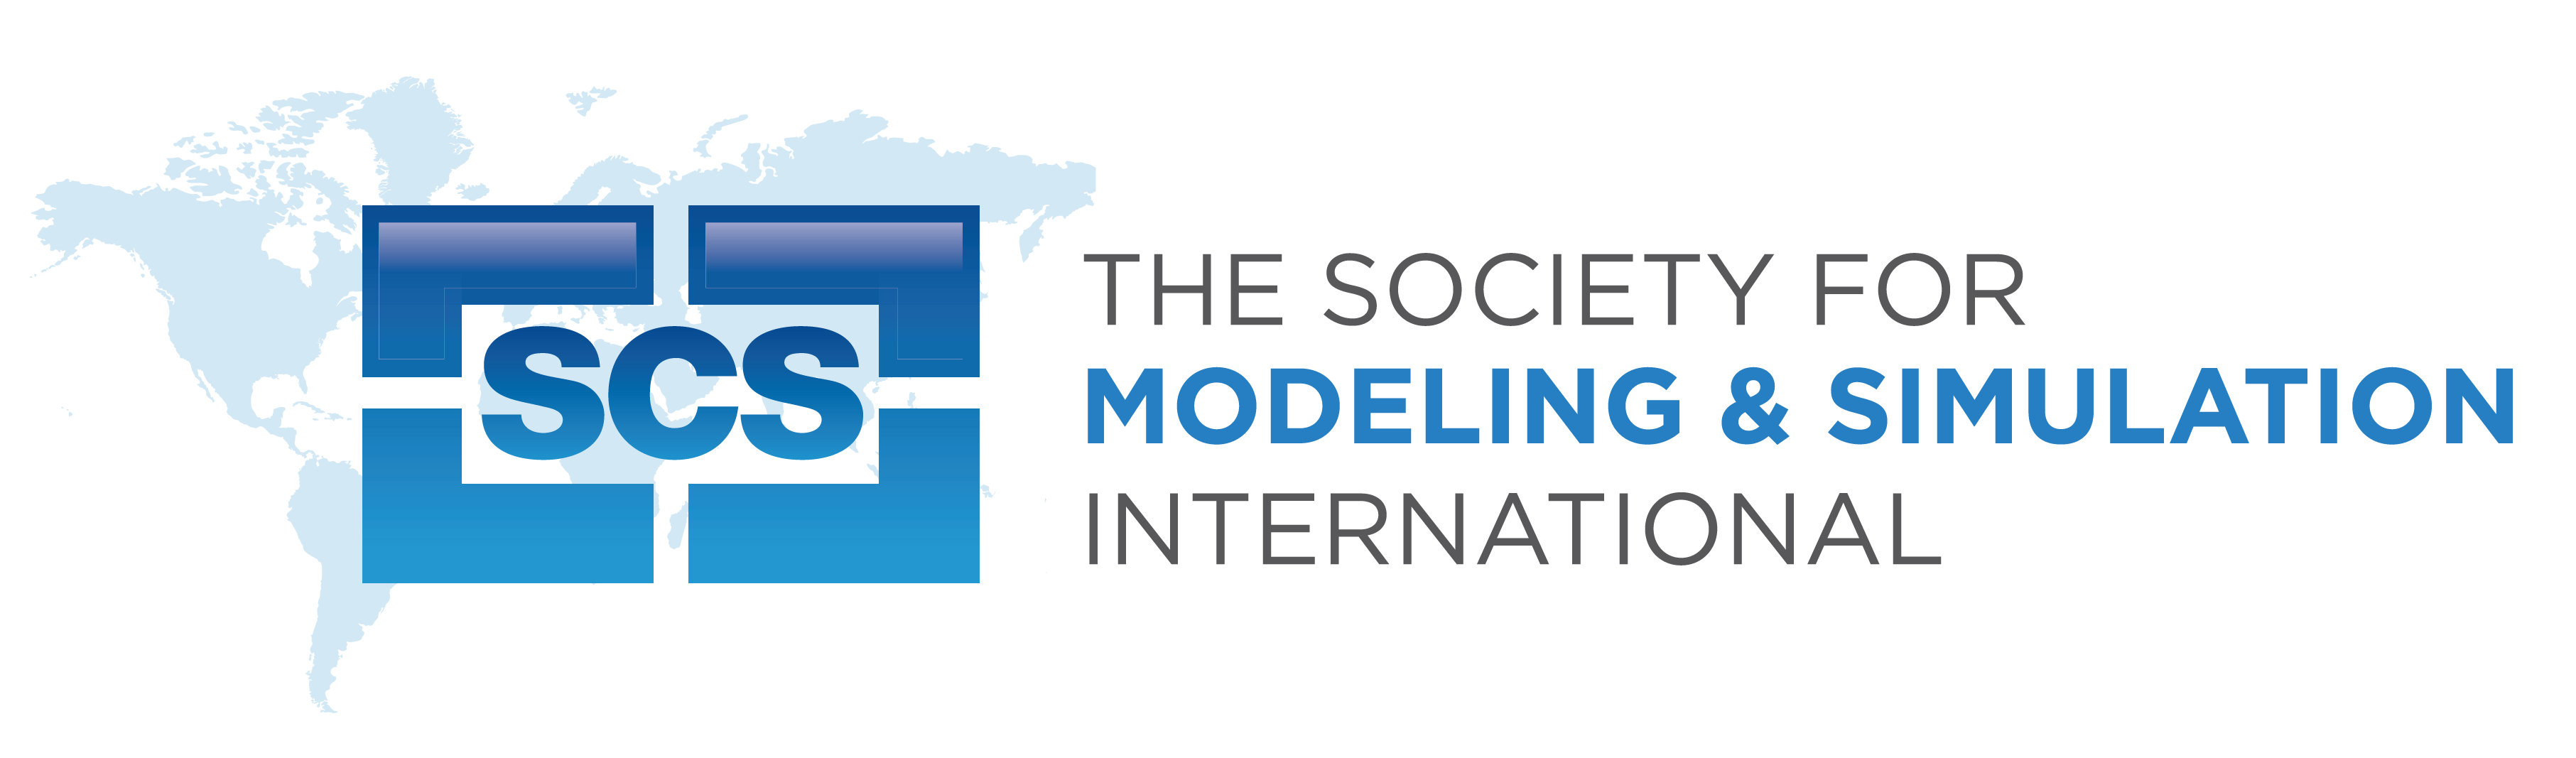 The Society for Modeling & Simulation International